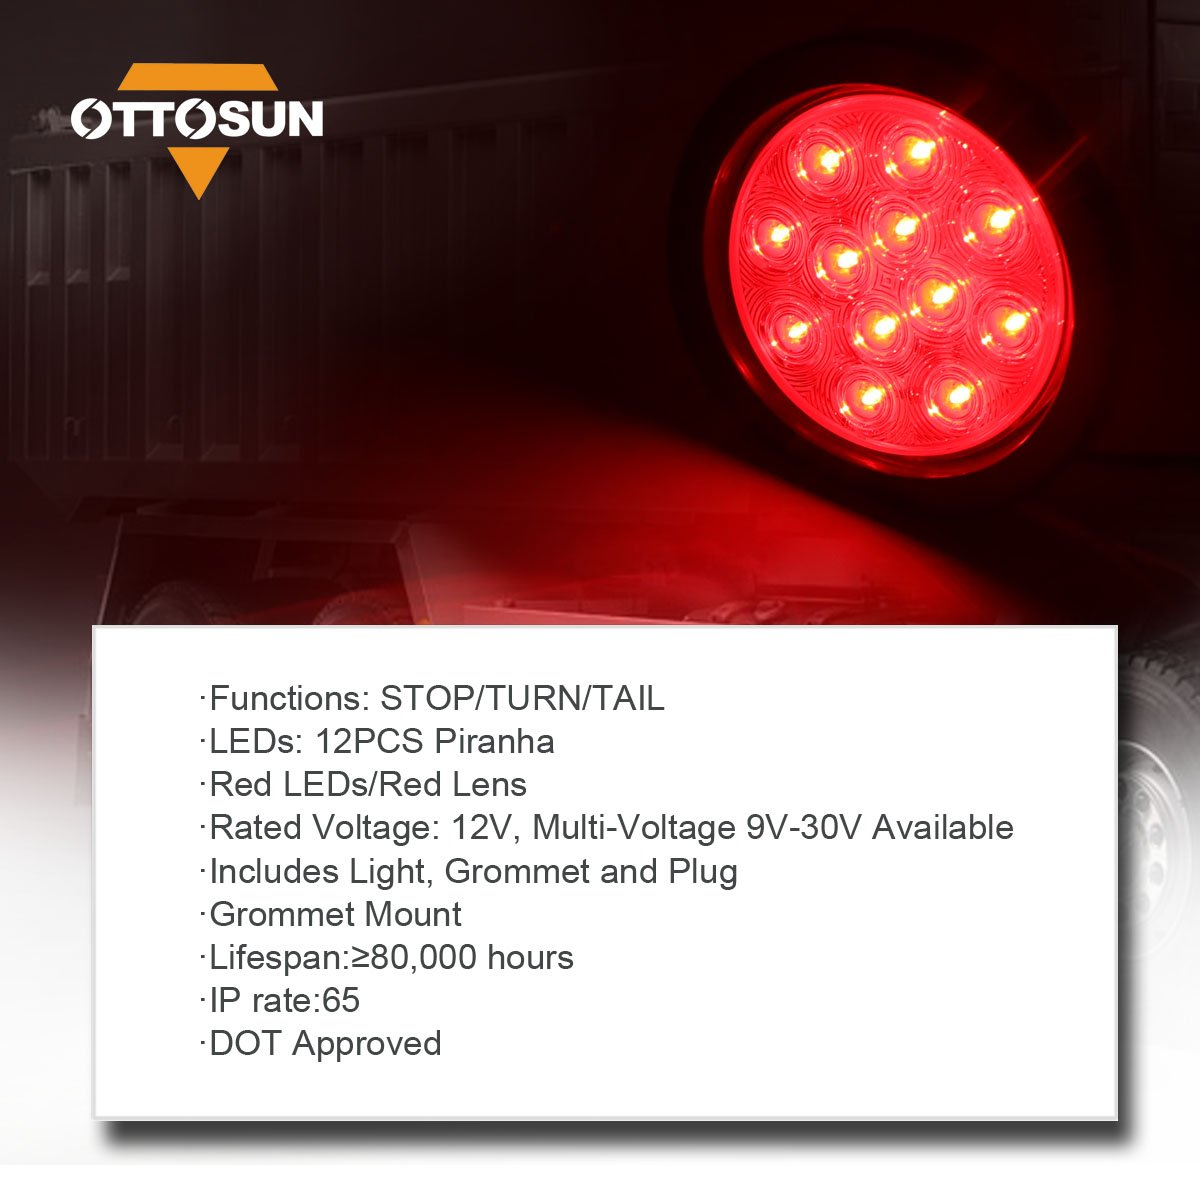 OTTO-C030312 Red 4 Round LED Tail Light OTTOSUN Red Sealed Waterproof Multi-function Red LEDs with PC Lens Stop Turn brake Lights for Cars SUVs or Trucks Trailers DOT /& SAE Approved